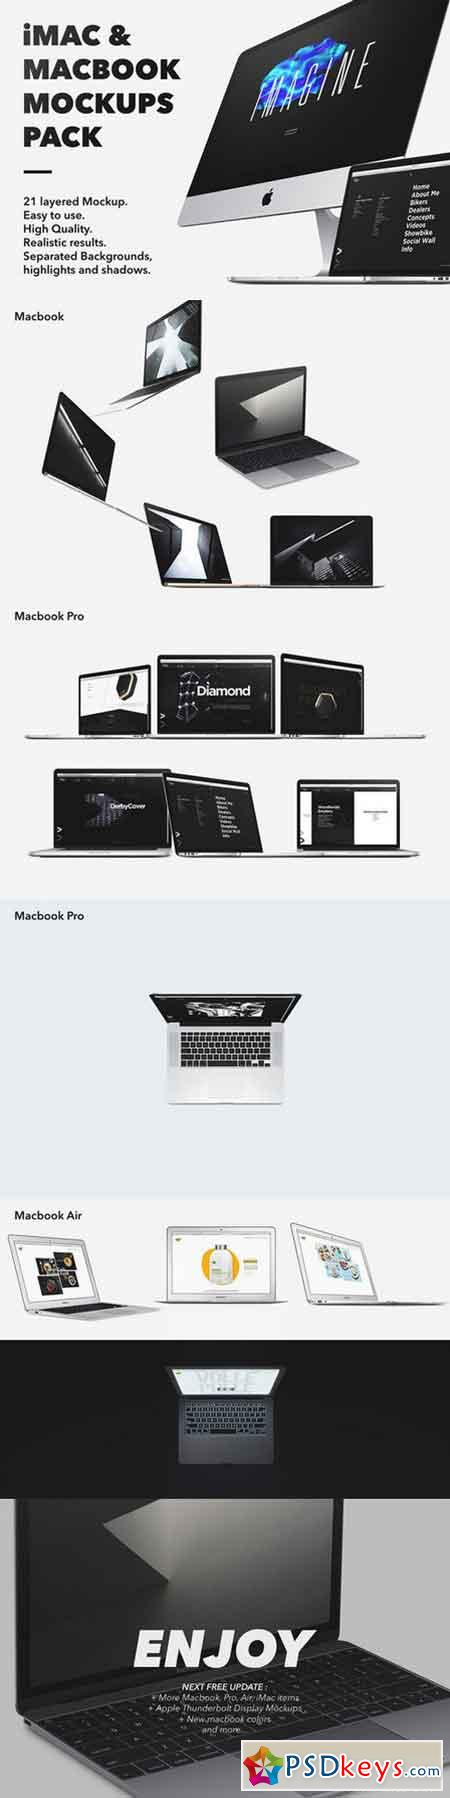 iMac & Macbook Mockups pack 685907